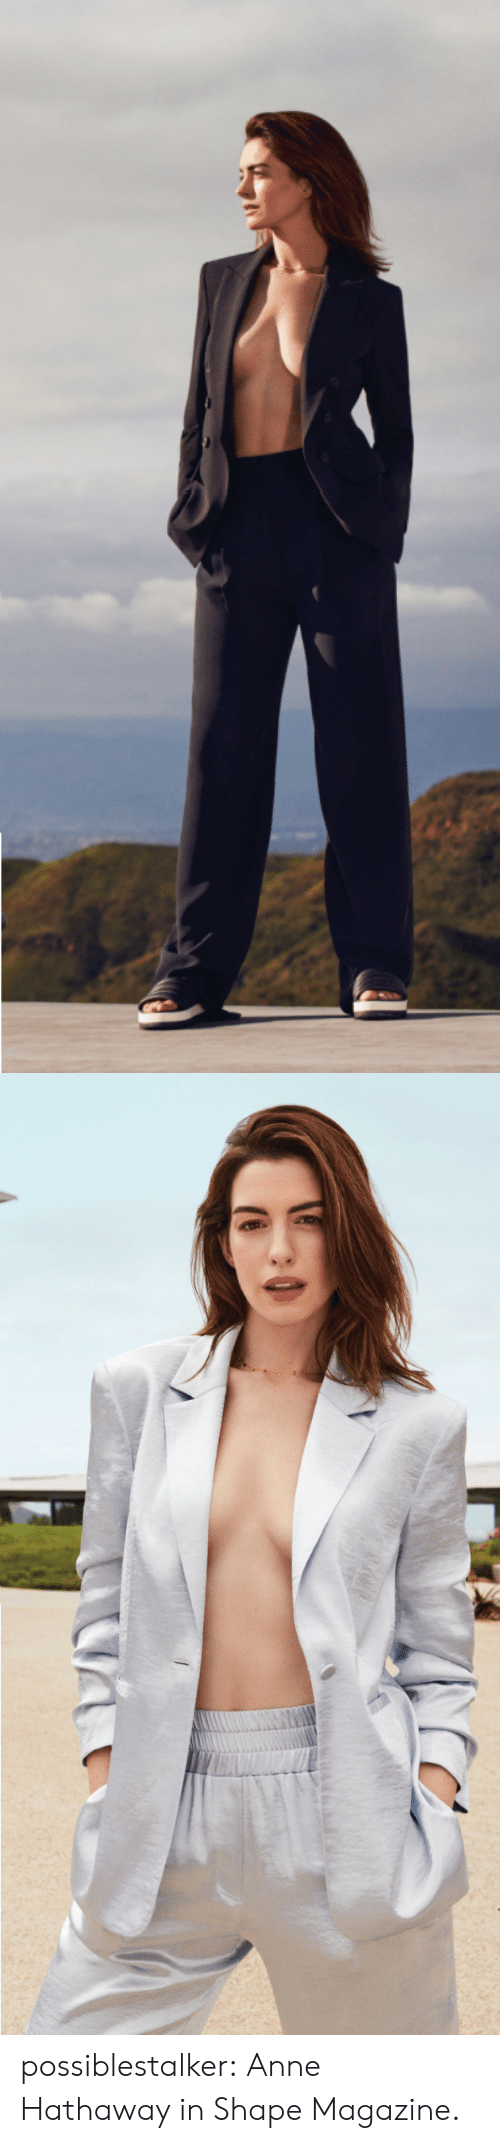 Tumblr, Anne Hathaway, and Blog: possiblestalker: Anne Hathaway in ShapeMagazine.